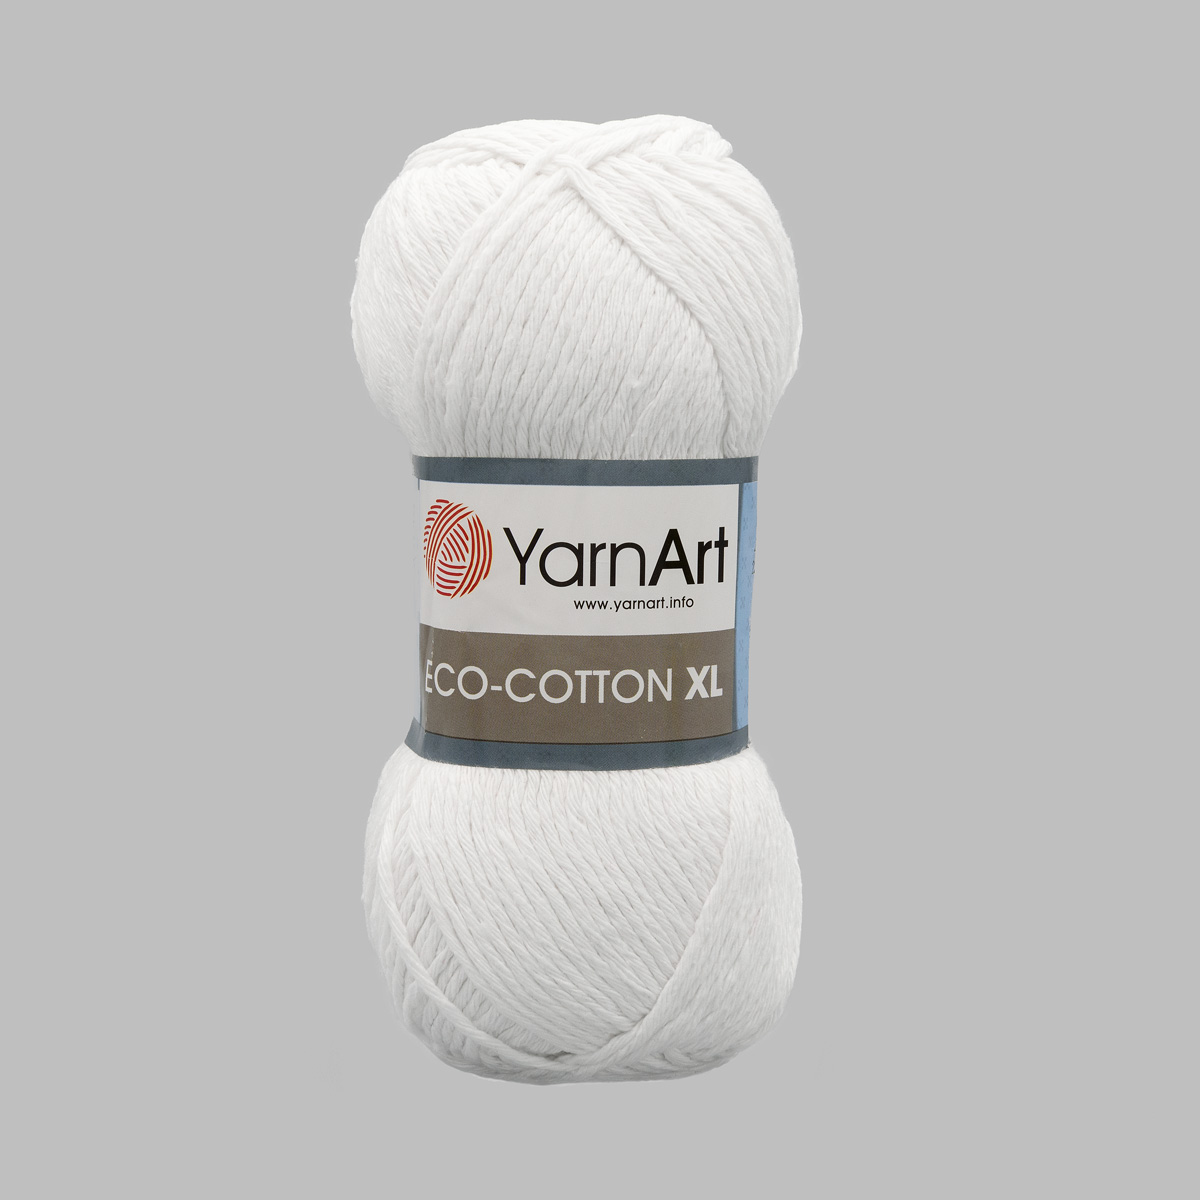 Пряжа Yarn art 'Eco Сotton XL' 200г 220м (85% хлопок, 15% полиэстер)